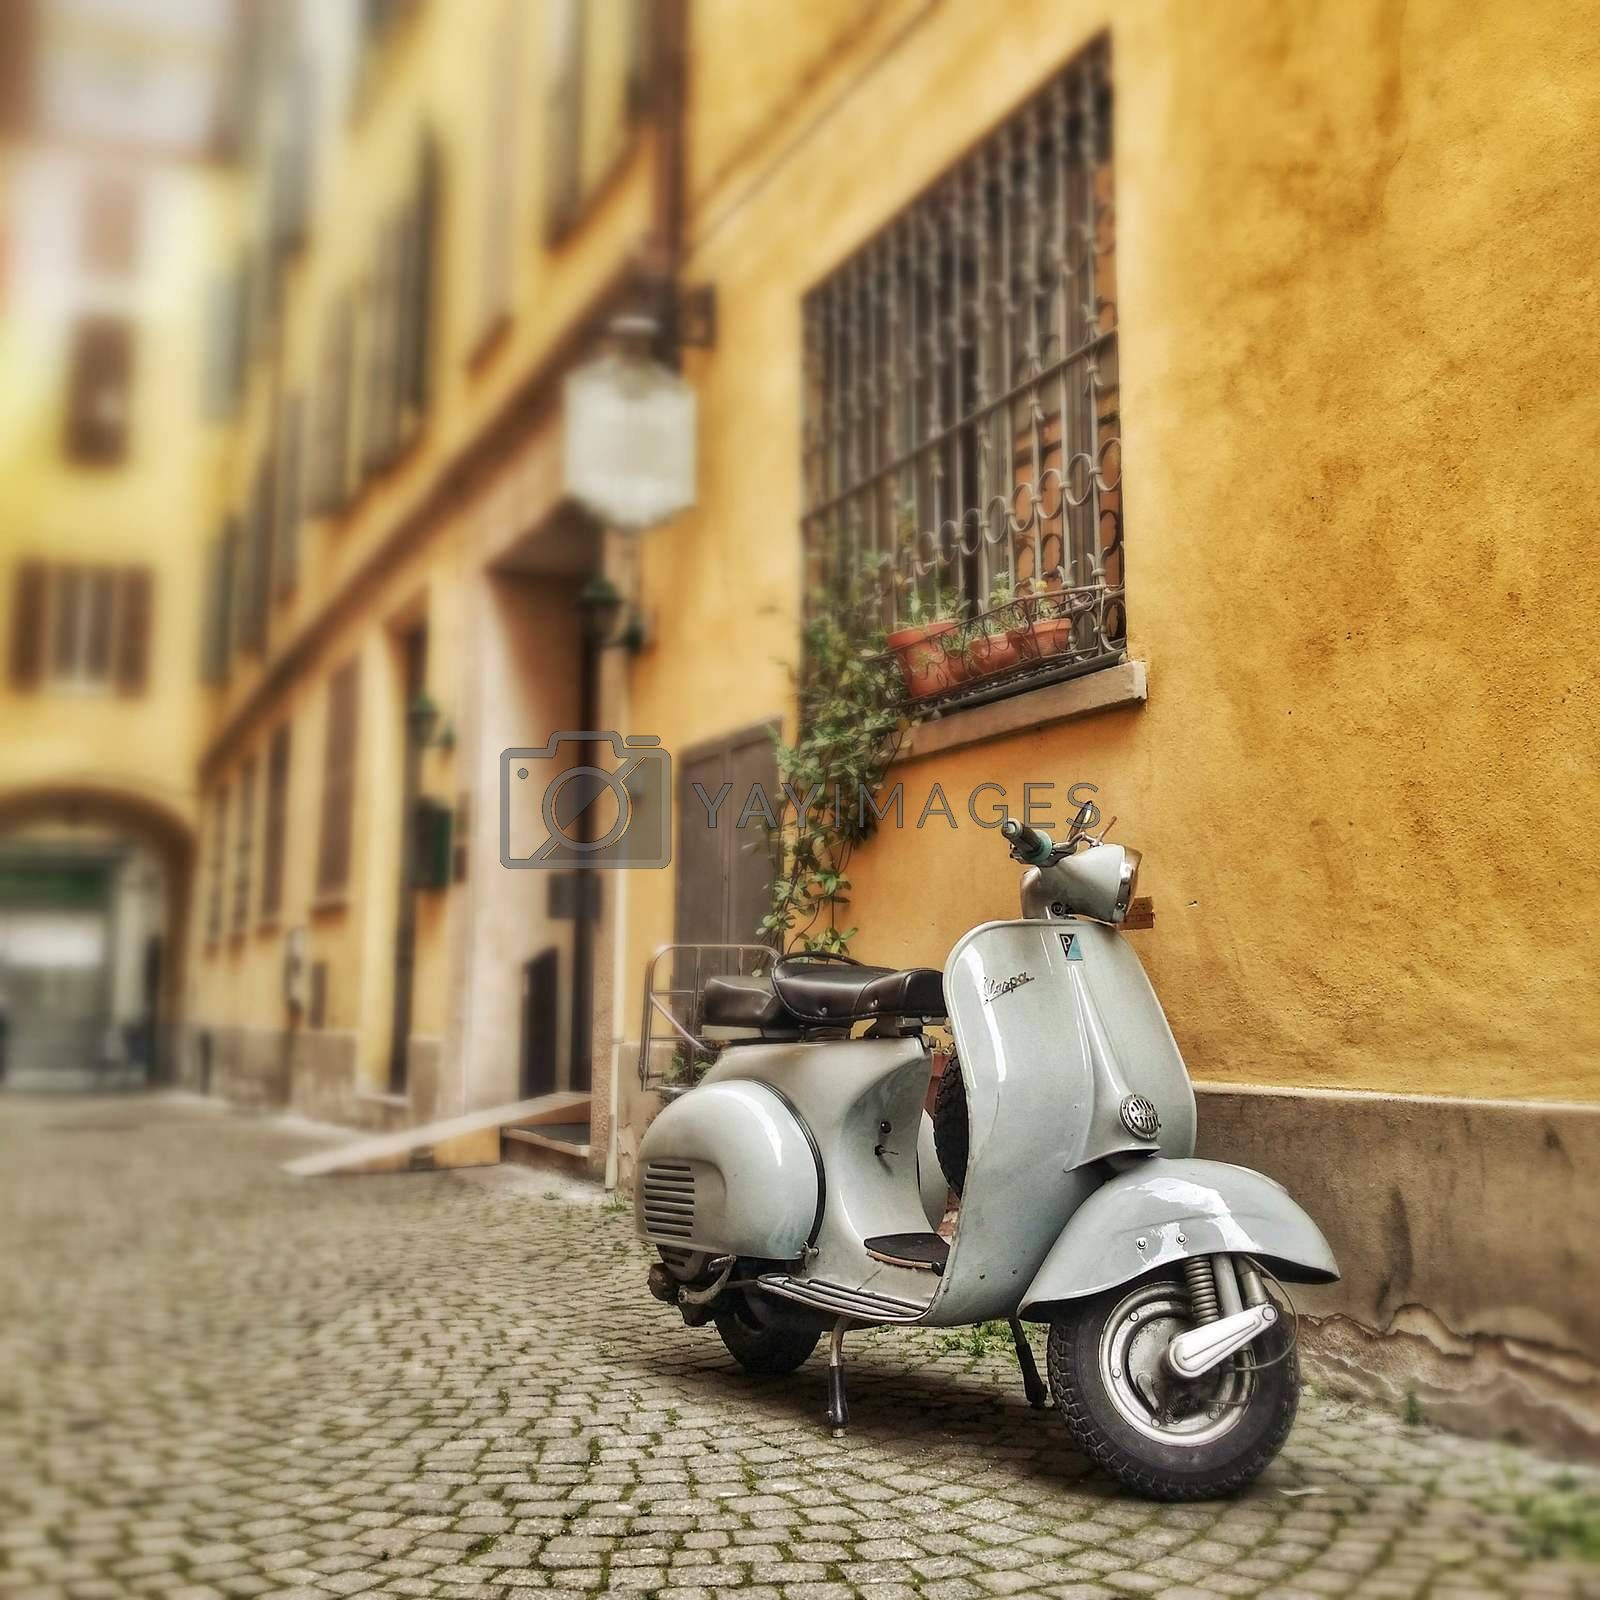 a 60's vespa motorcycle in a typical italian old town alley.